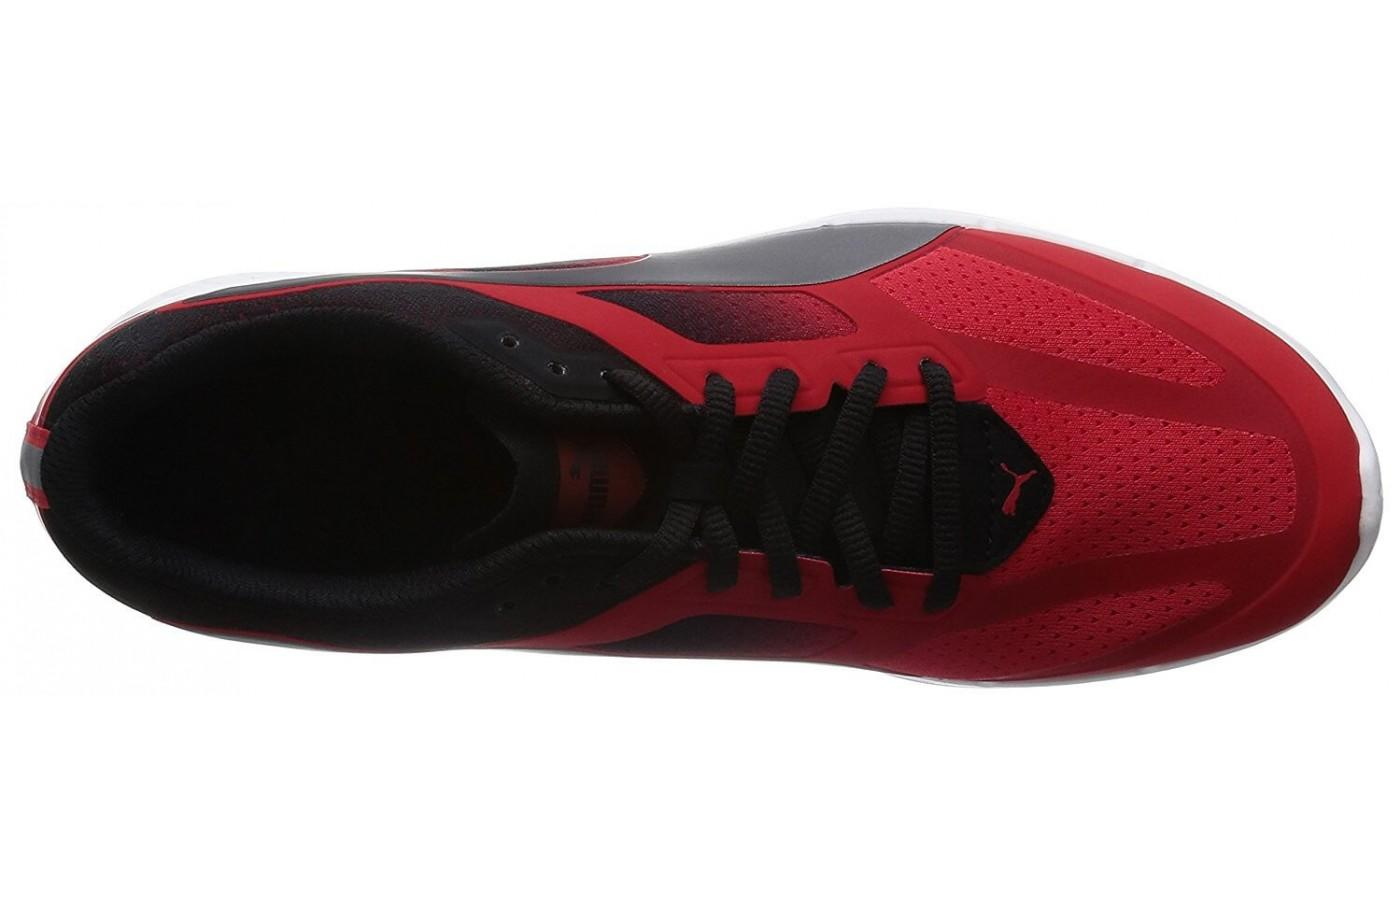 740eb49a5a Puma Ignite reviewed and compared  Puma Ignite AirMesh breathable upper ...